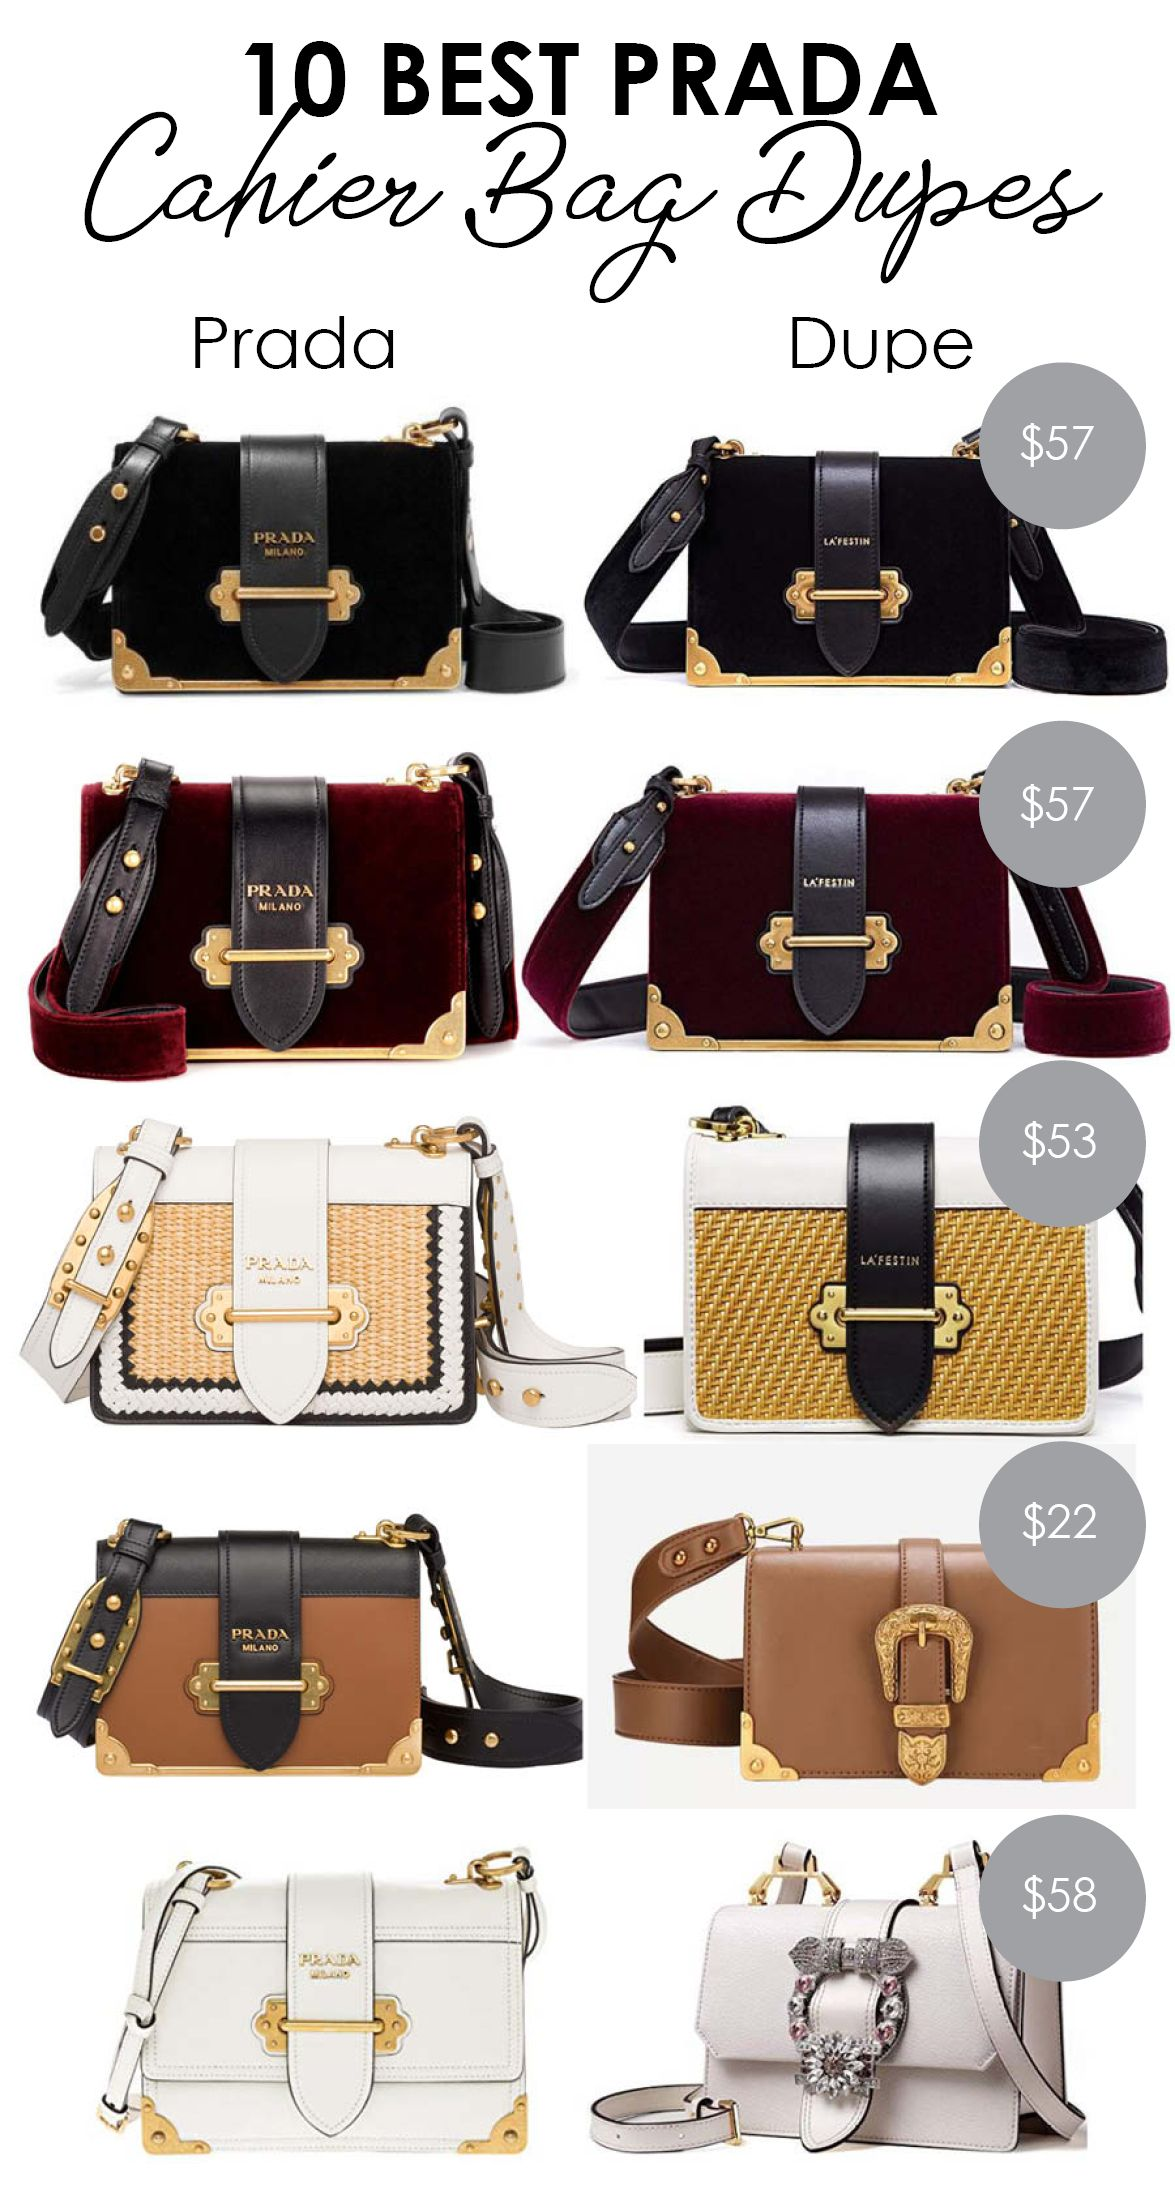 c546162ce34d For today's save vs. splurge feature, I want to talk about the best Prada  Cahier bag dupes on Amazon and other retailers. Below, you'll find a  selection of ...